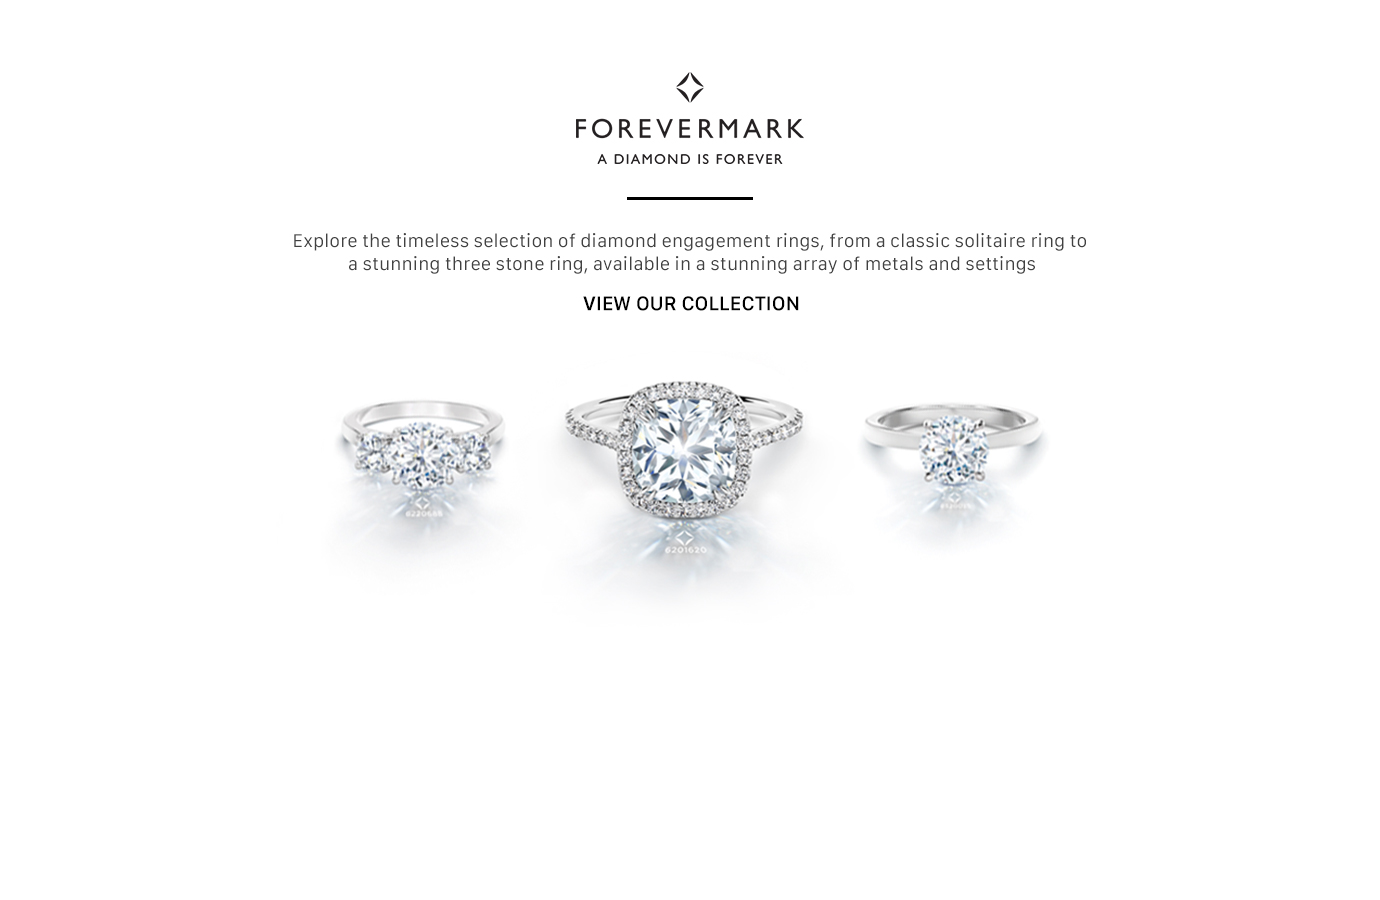 Forevermark Engagement Rings | Sausalito Jewelers -